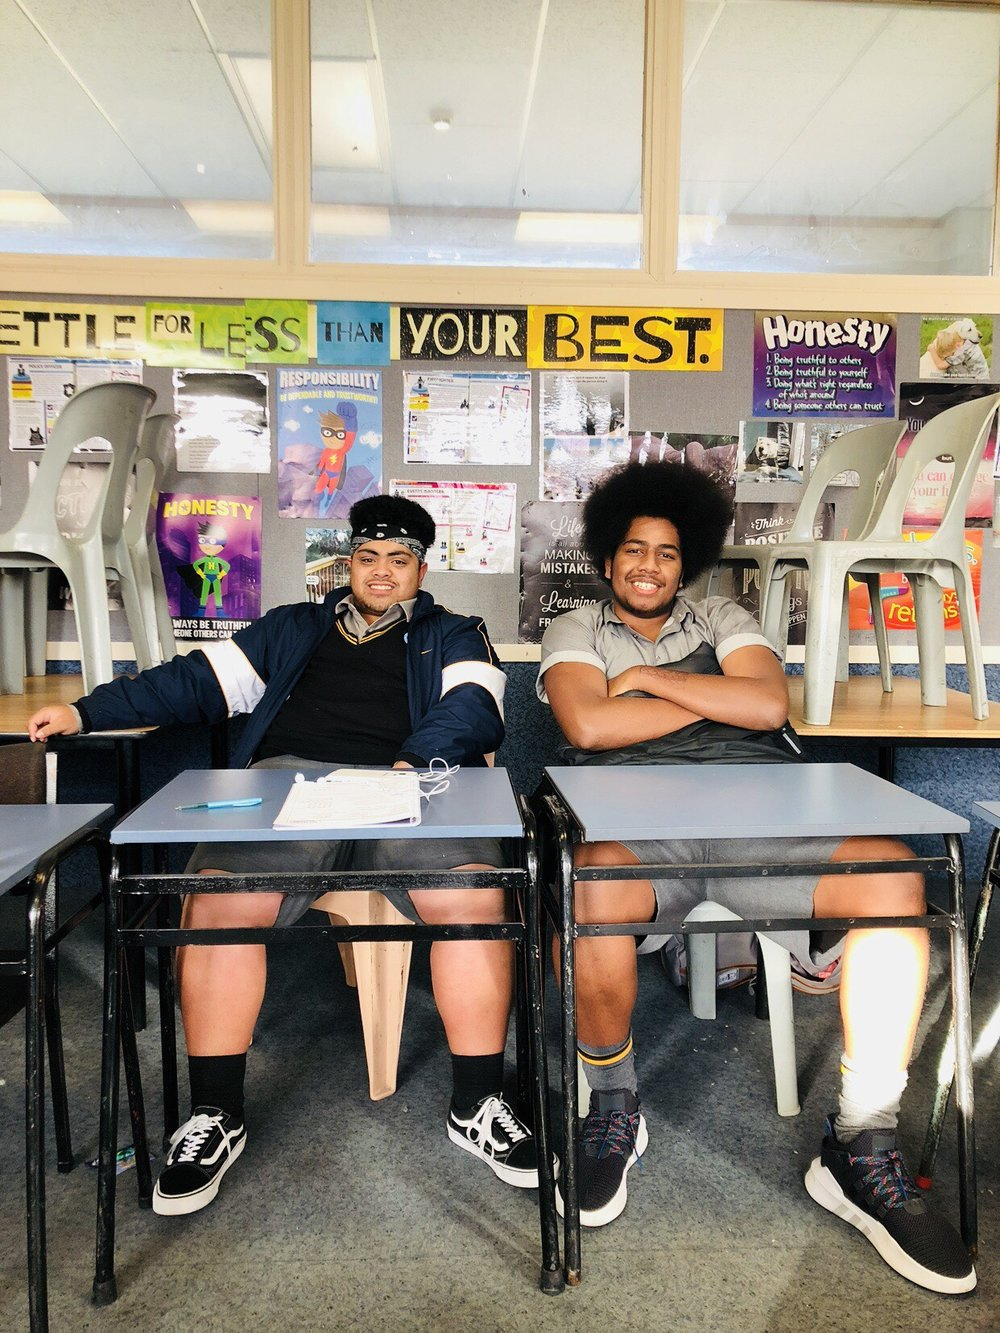 Image taken at a GET Started & GET Going workshop at Rongotai College -